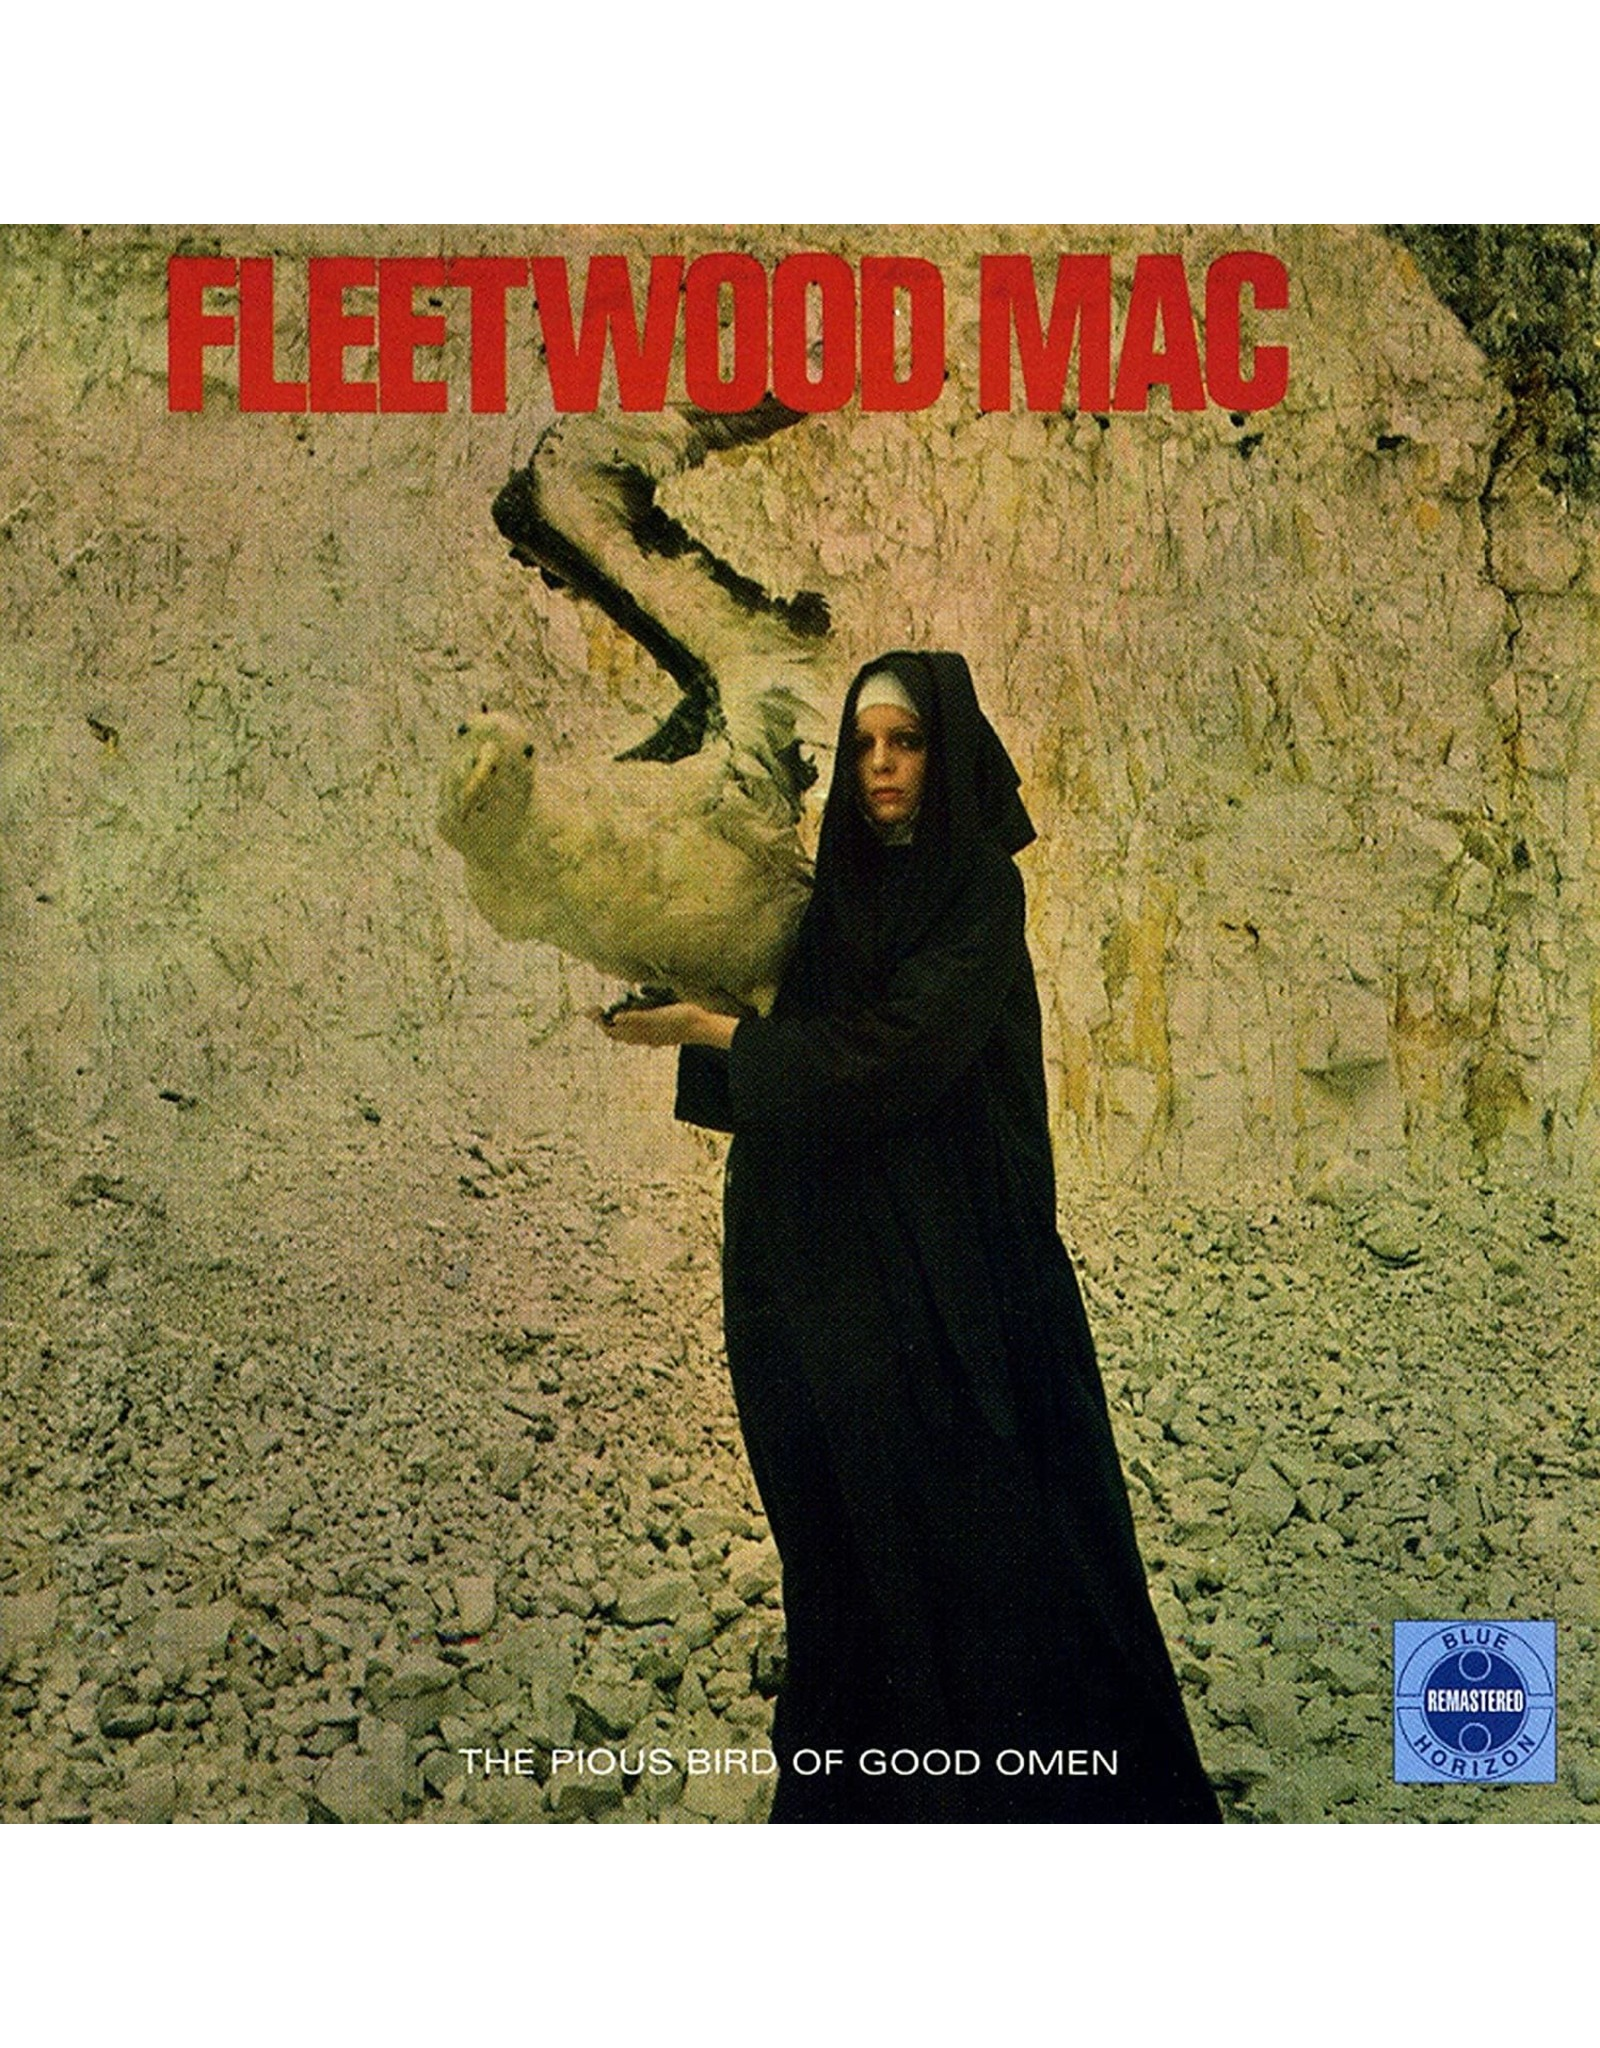 Fleetwood Mac - The Pious Bird of Good Omen LP